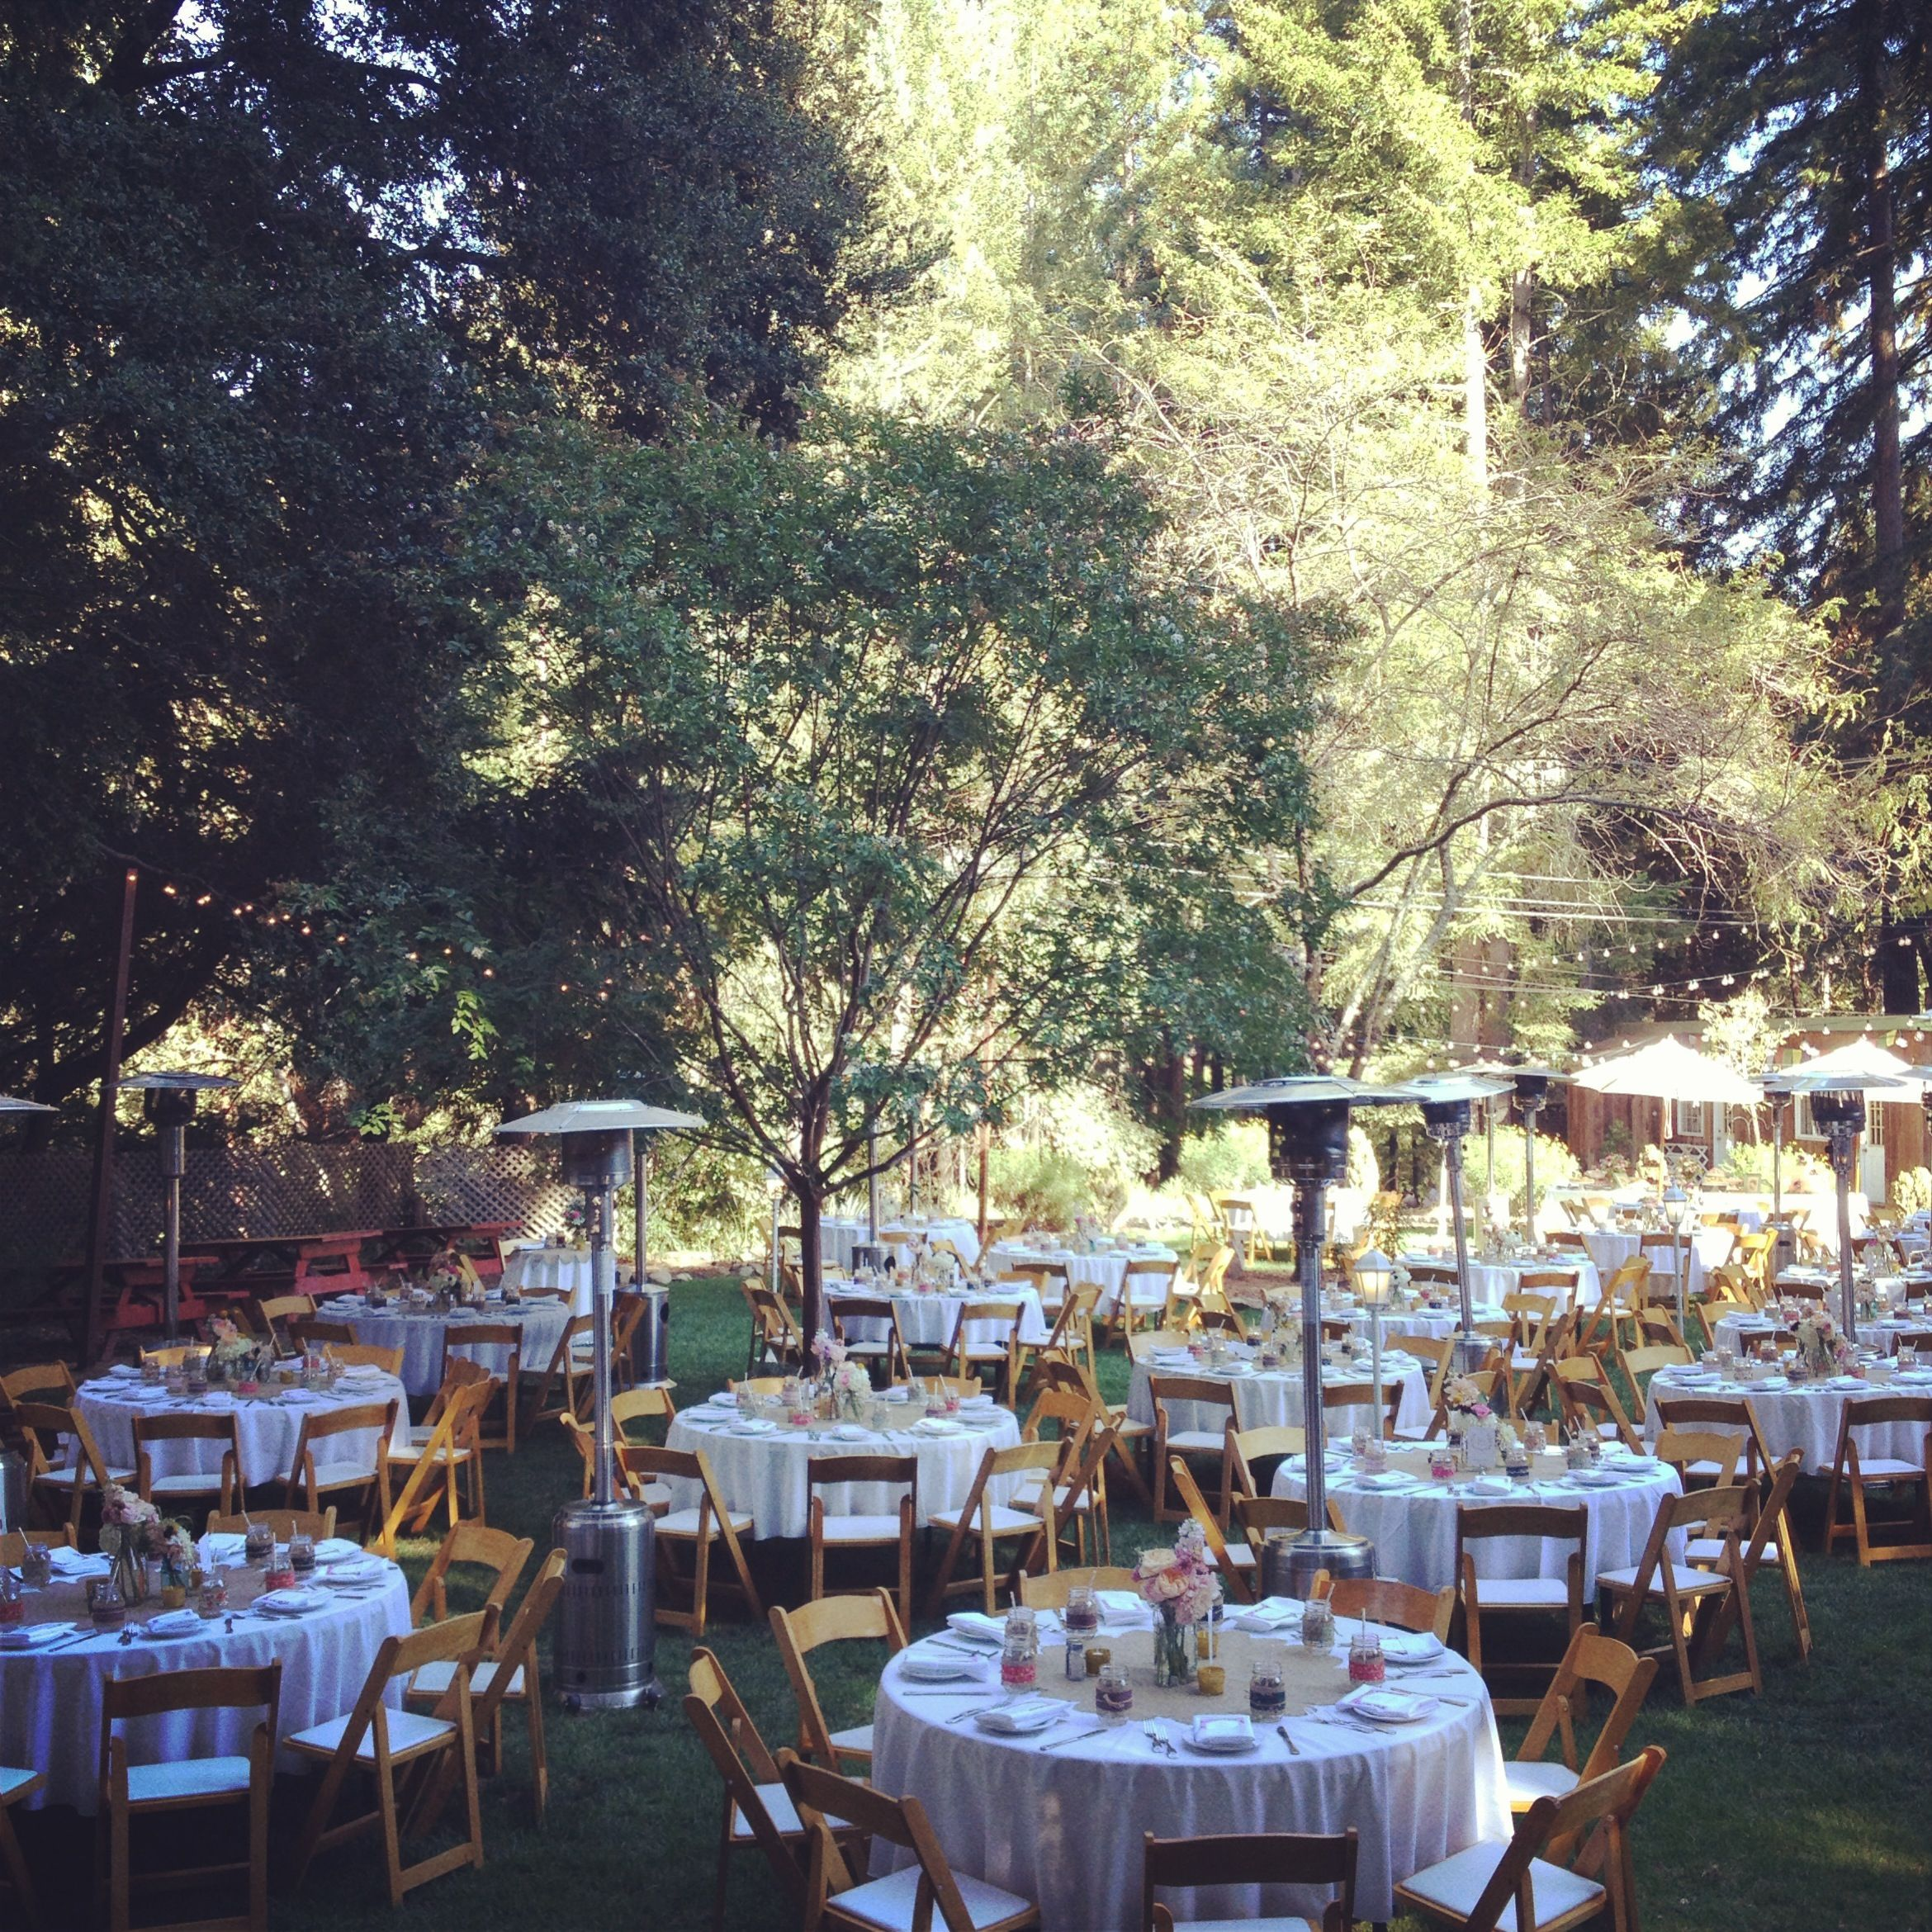 Amphitheatre Of The Redwoods At Pema Osel Ling Wedding And Event Venue Santa Cruz